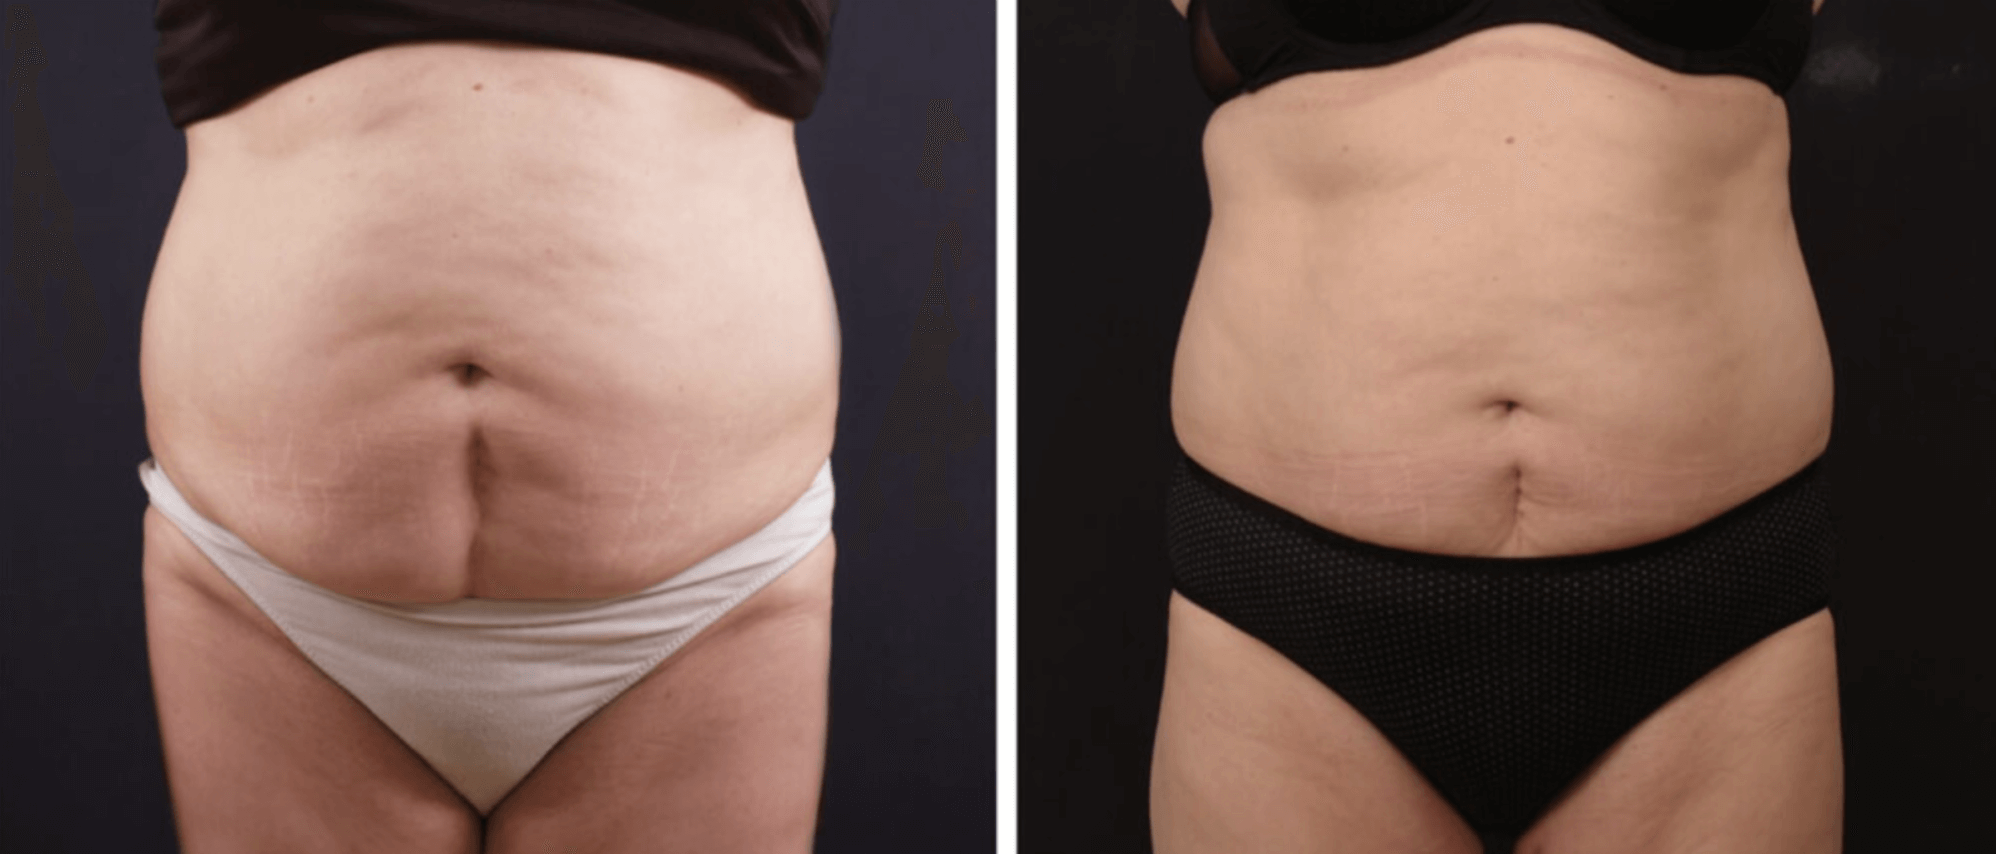 vanquish fat reduction before and after - MIRA Clinic Perth